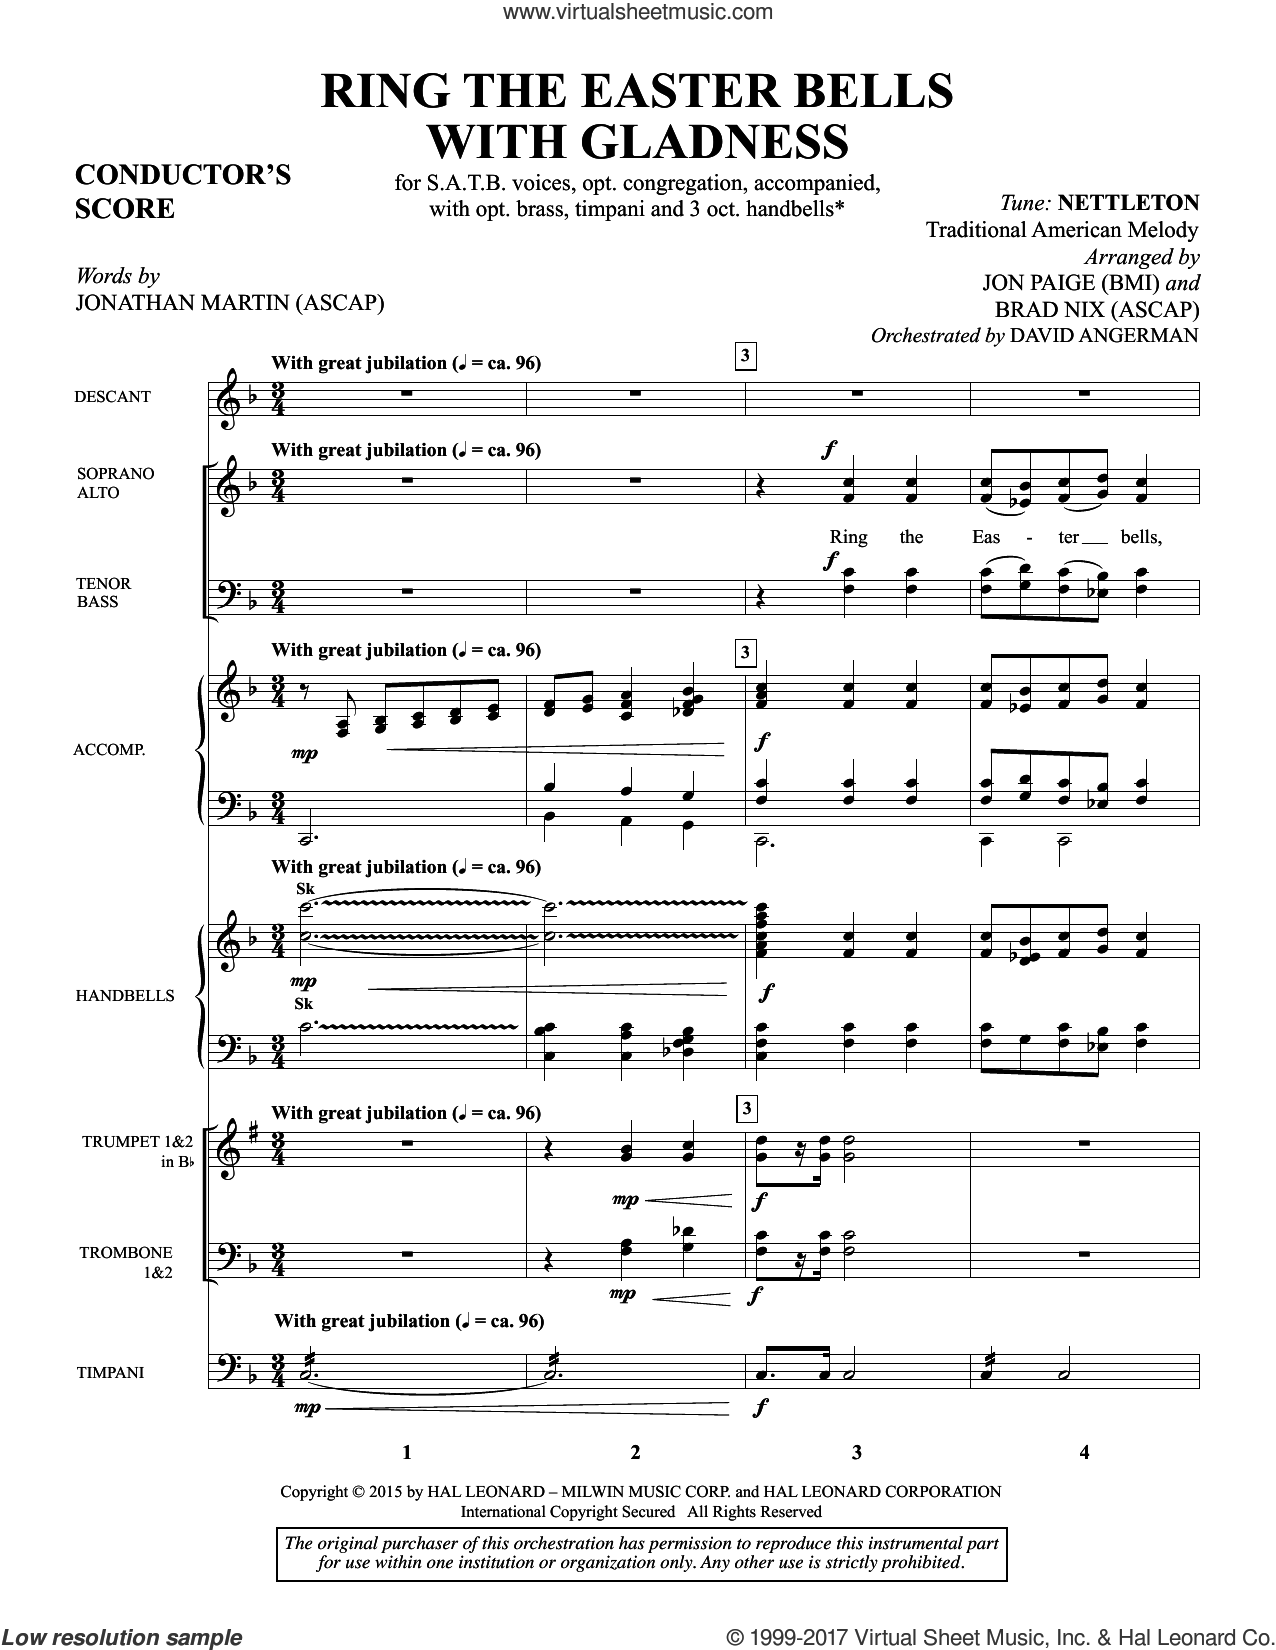 Ring the Easter Bells with Gladness (COMPLETE) sheet music for orchestra/band by Brad Nix, Jon Paige and Jonathan Martin, intermediate skill level